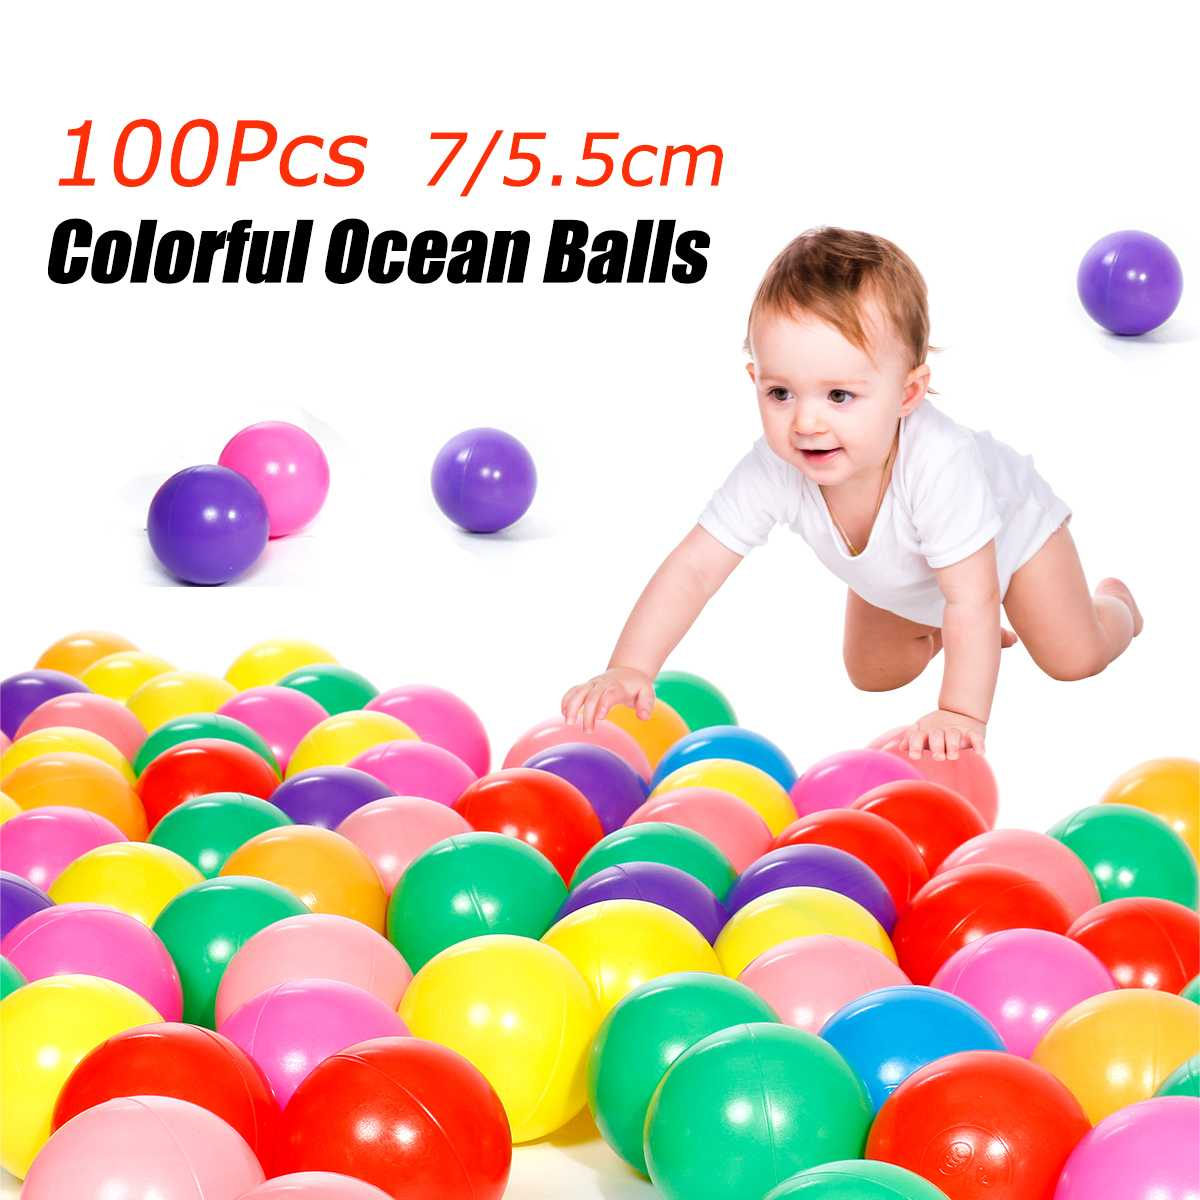 100 Pcs/lot 7cm Eco-Friendly Colorful Ball Soft Plastic Ocean Ball Funny Baby Kid Swim Pit Toy Water Pool Sensory Baby Toy